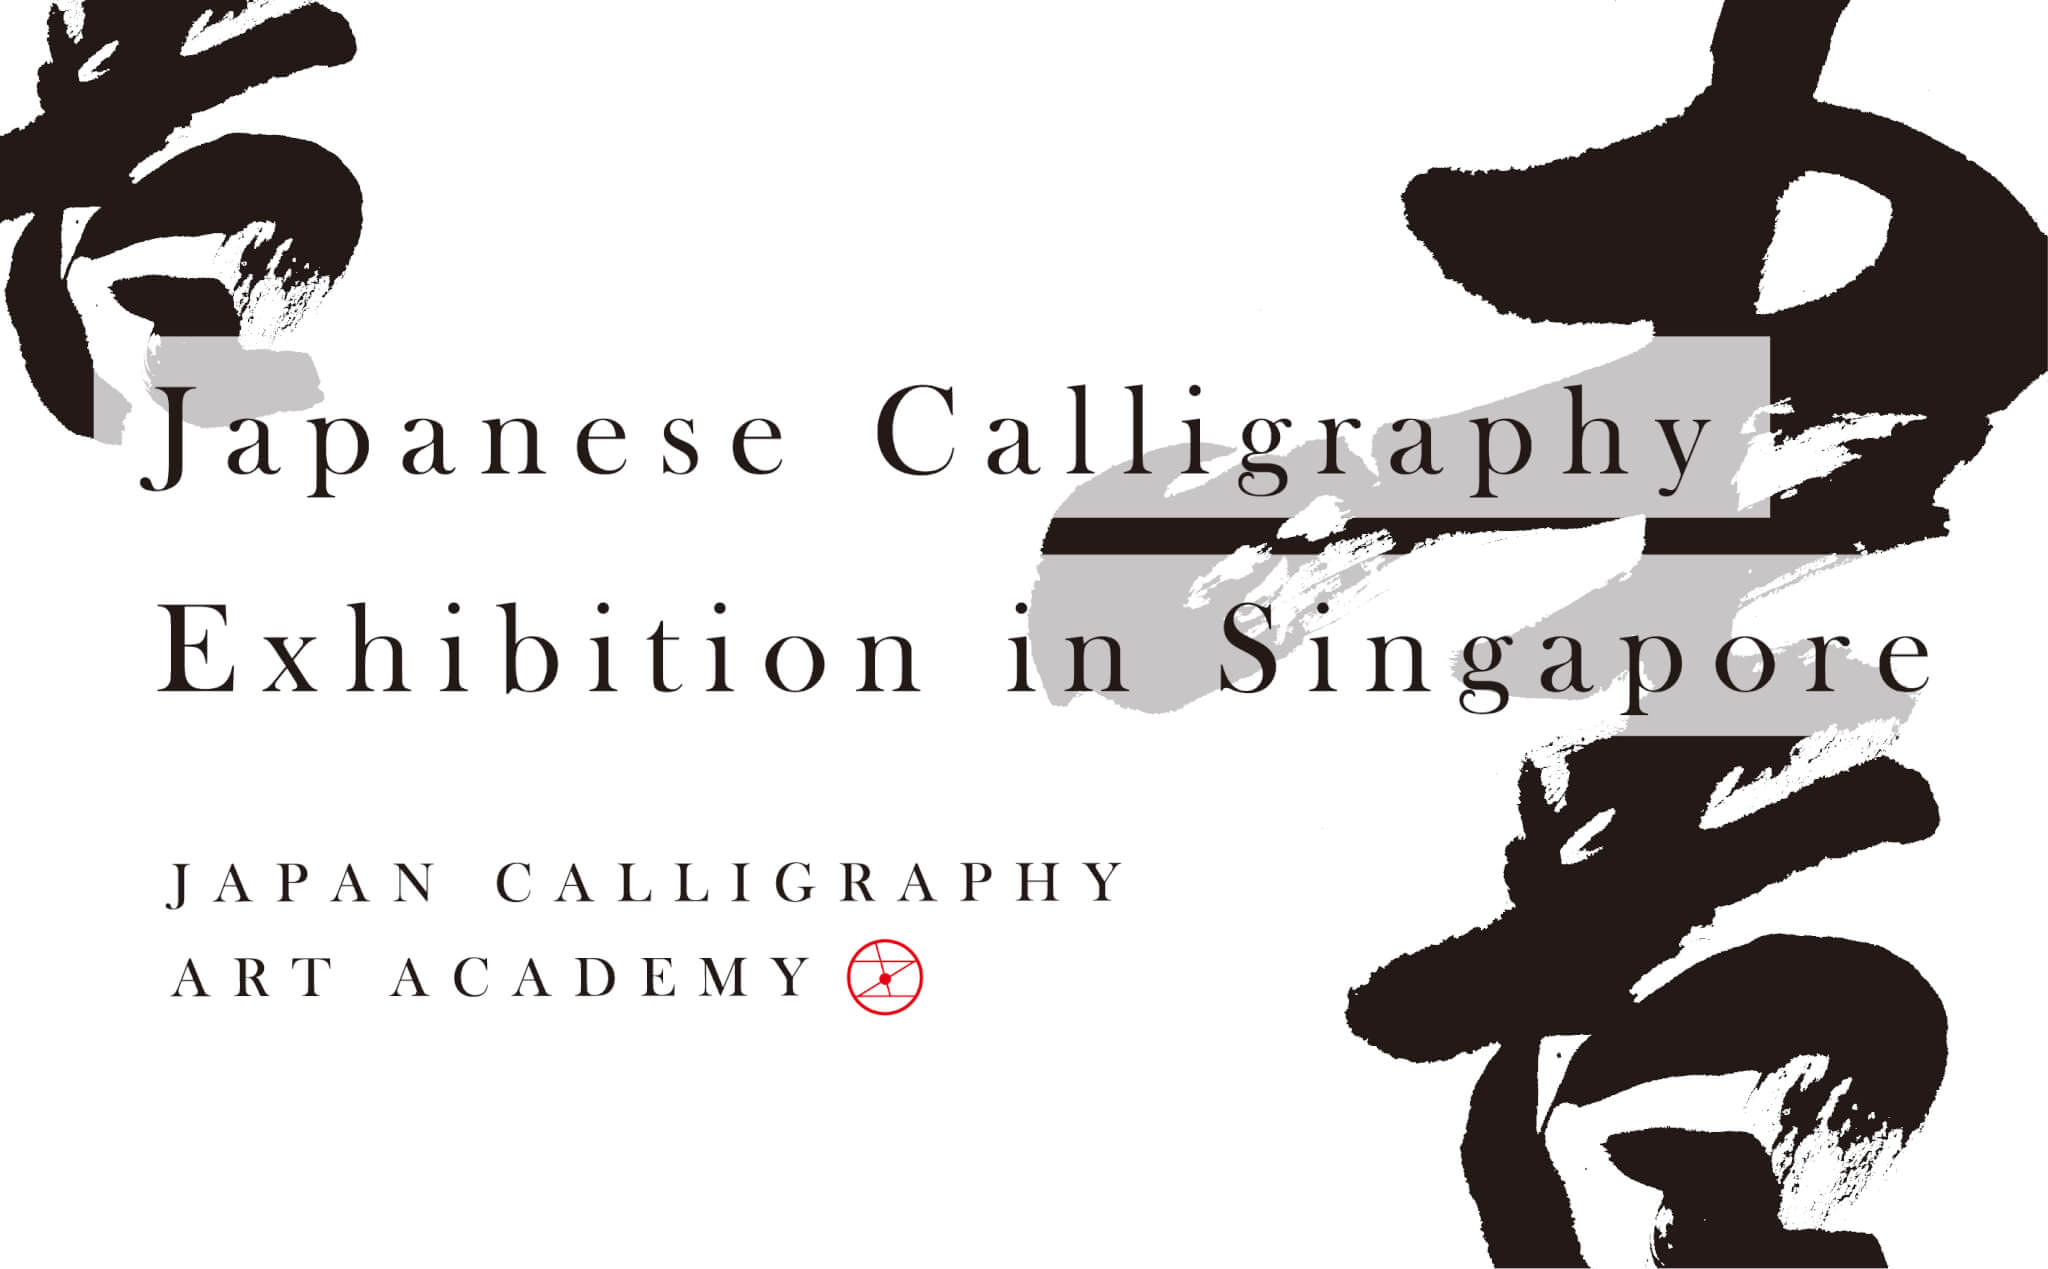 Sunstar's Japanese Calligraphy Art Academy Exhibtion